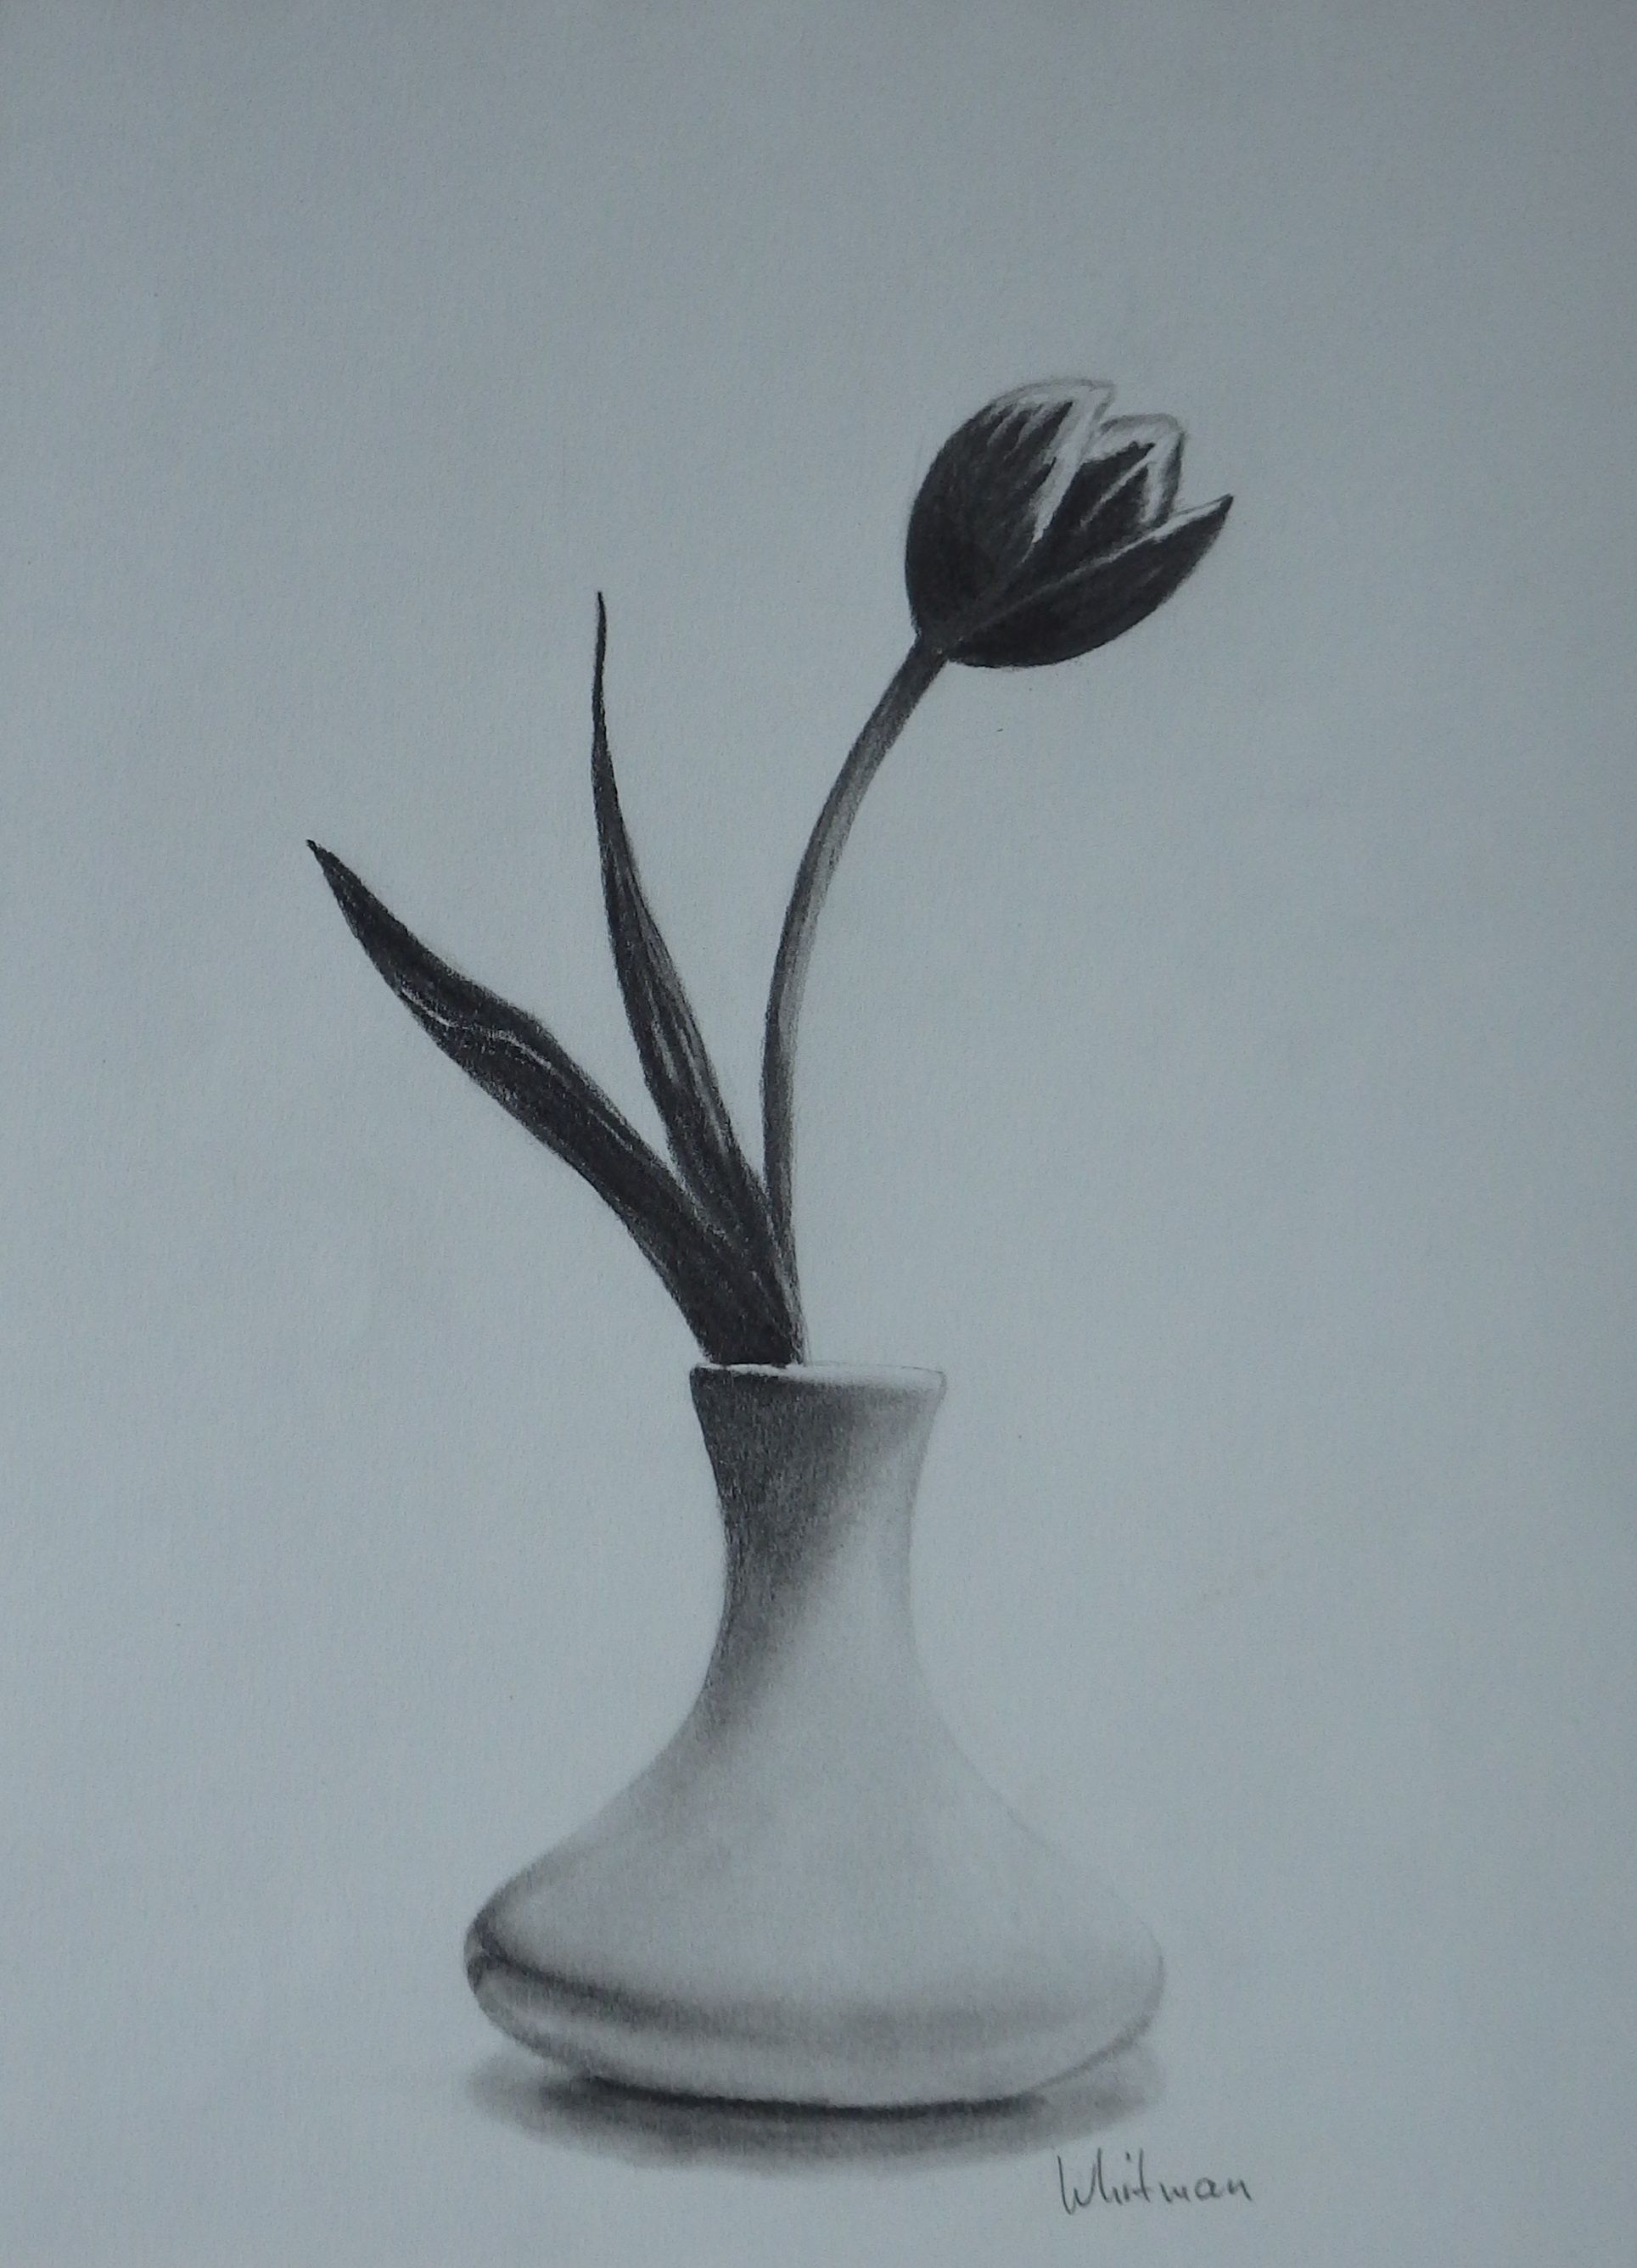 Elena Whitman Flower Sketch Pencil Flower Vase Drawing Flower